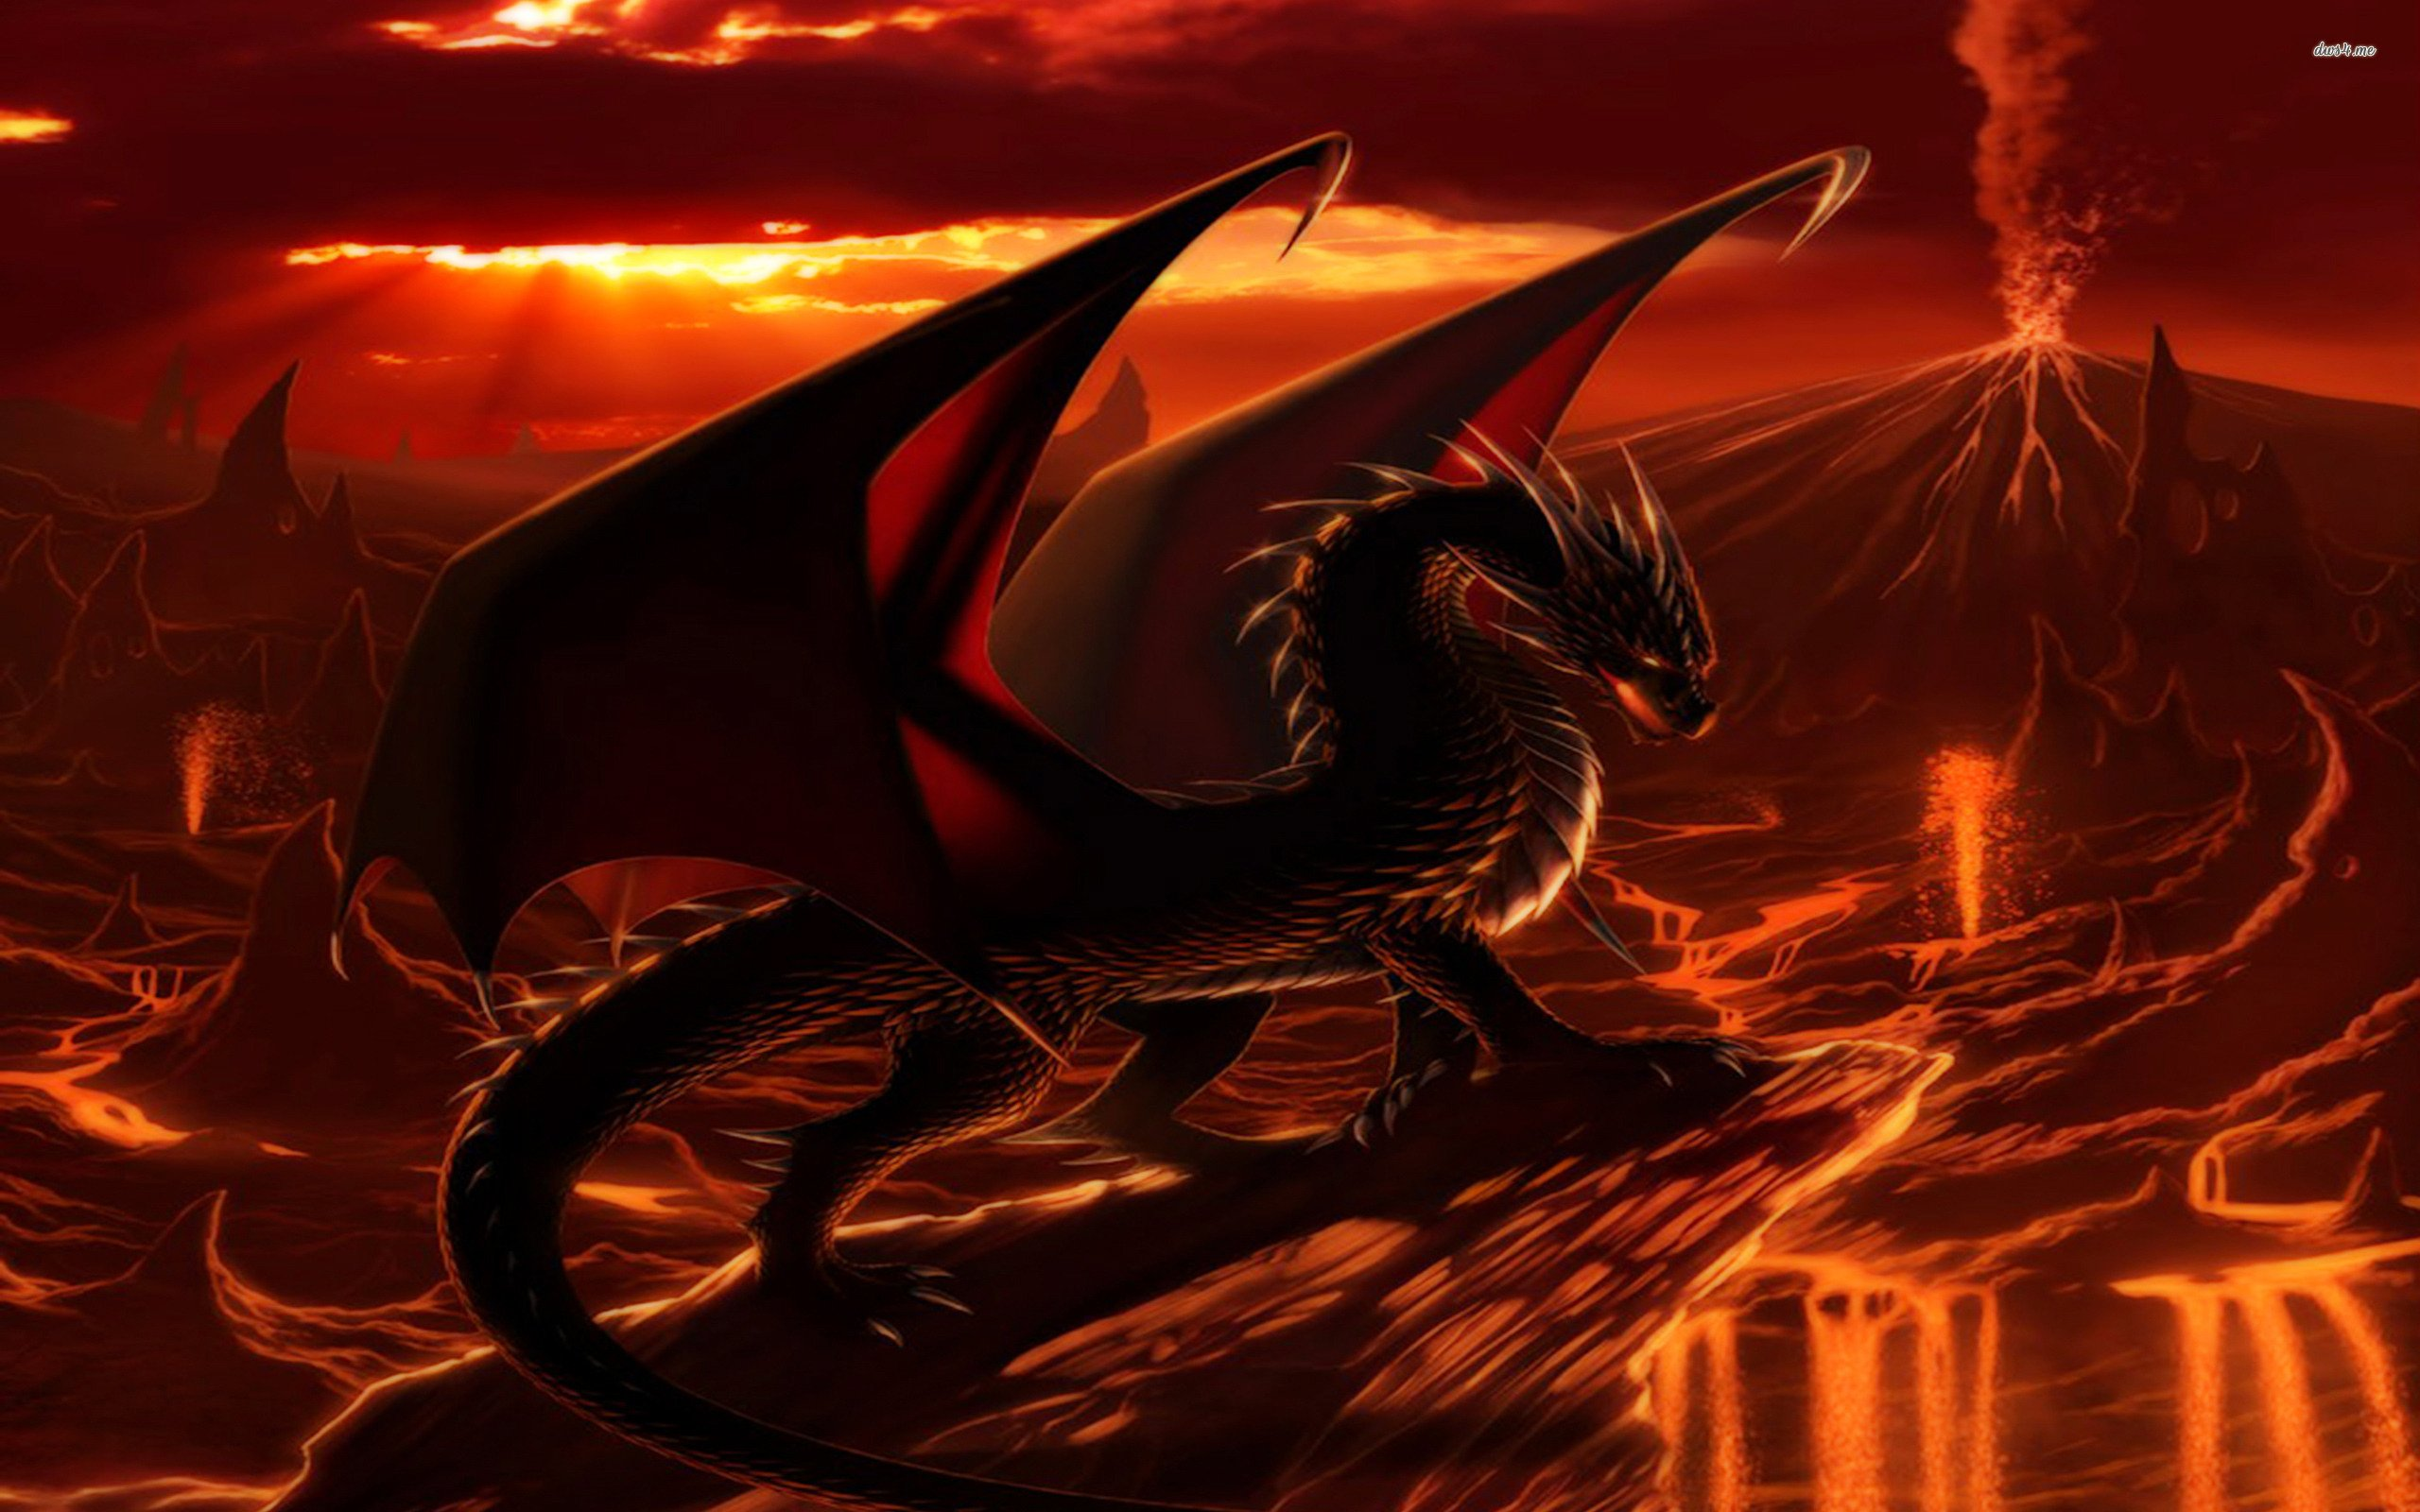 Dragon Fire Cool Backgrounds Wallpapers 9994   Amazing Wallpaperz 2560x1600